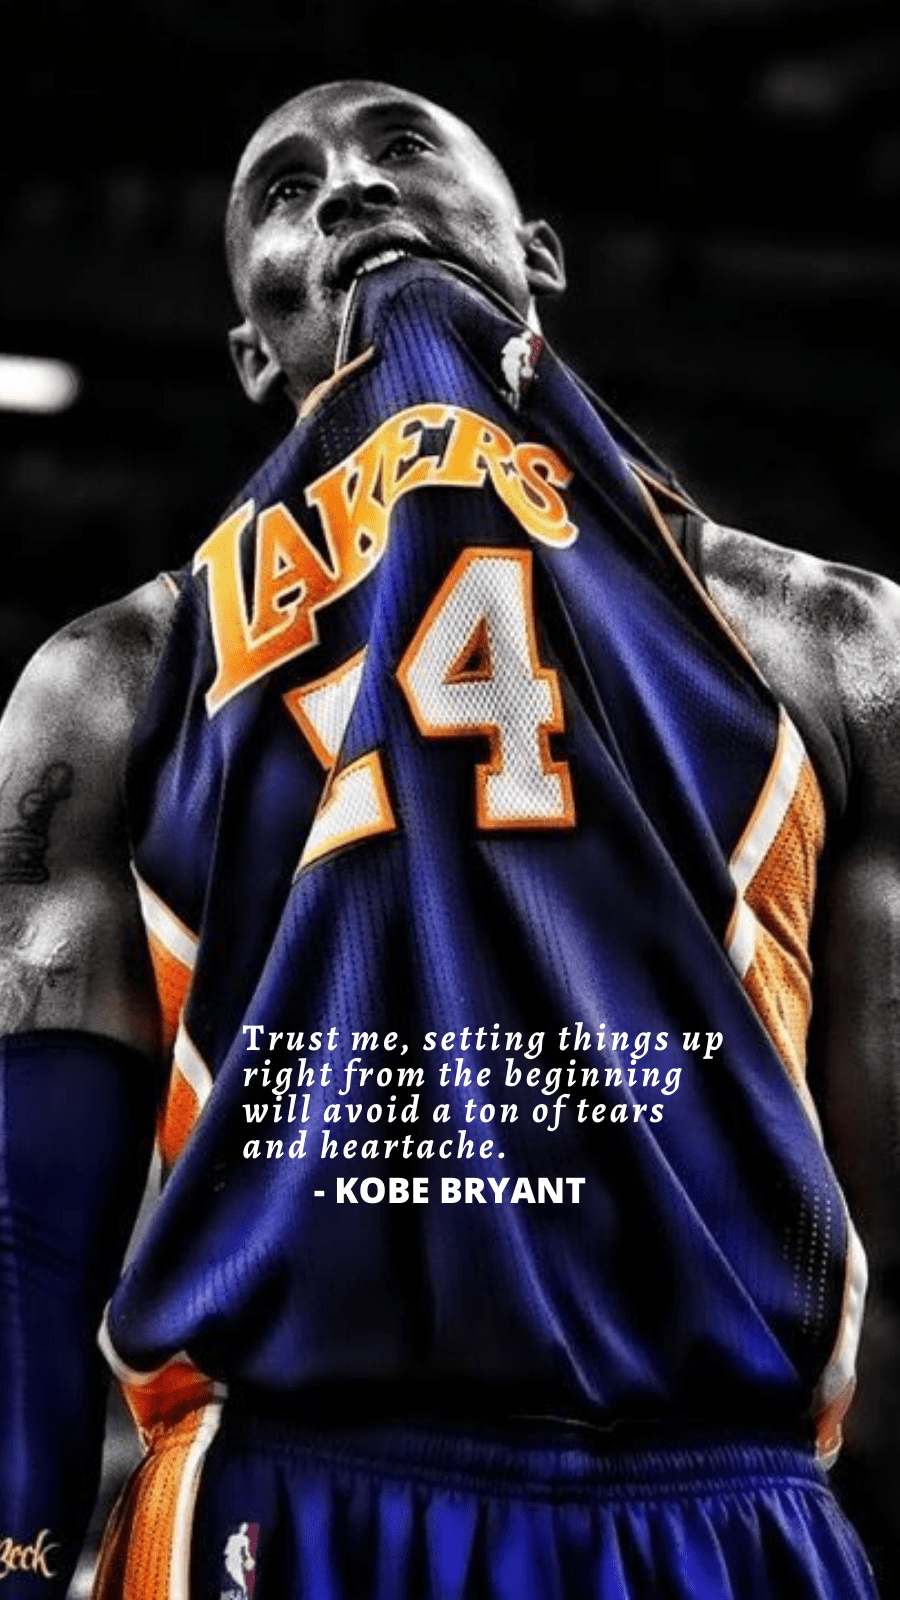 Having A Kobe Bryant Wallpaper Would Be A Great Way Black Mamba Kobe Bryant 2851078 Hd Wallpaper Backgrounds Download